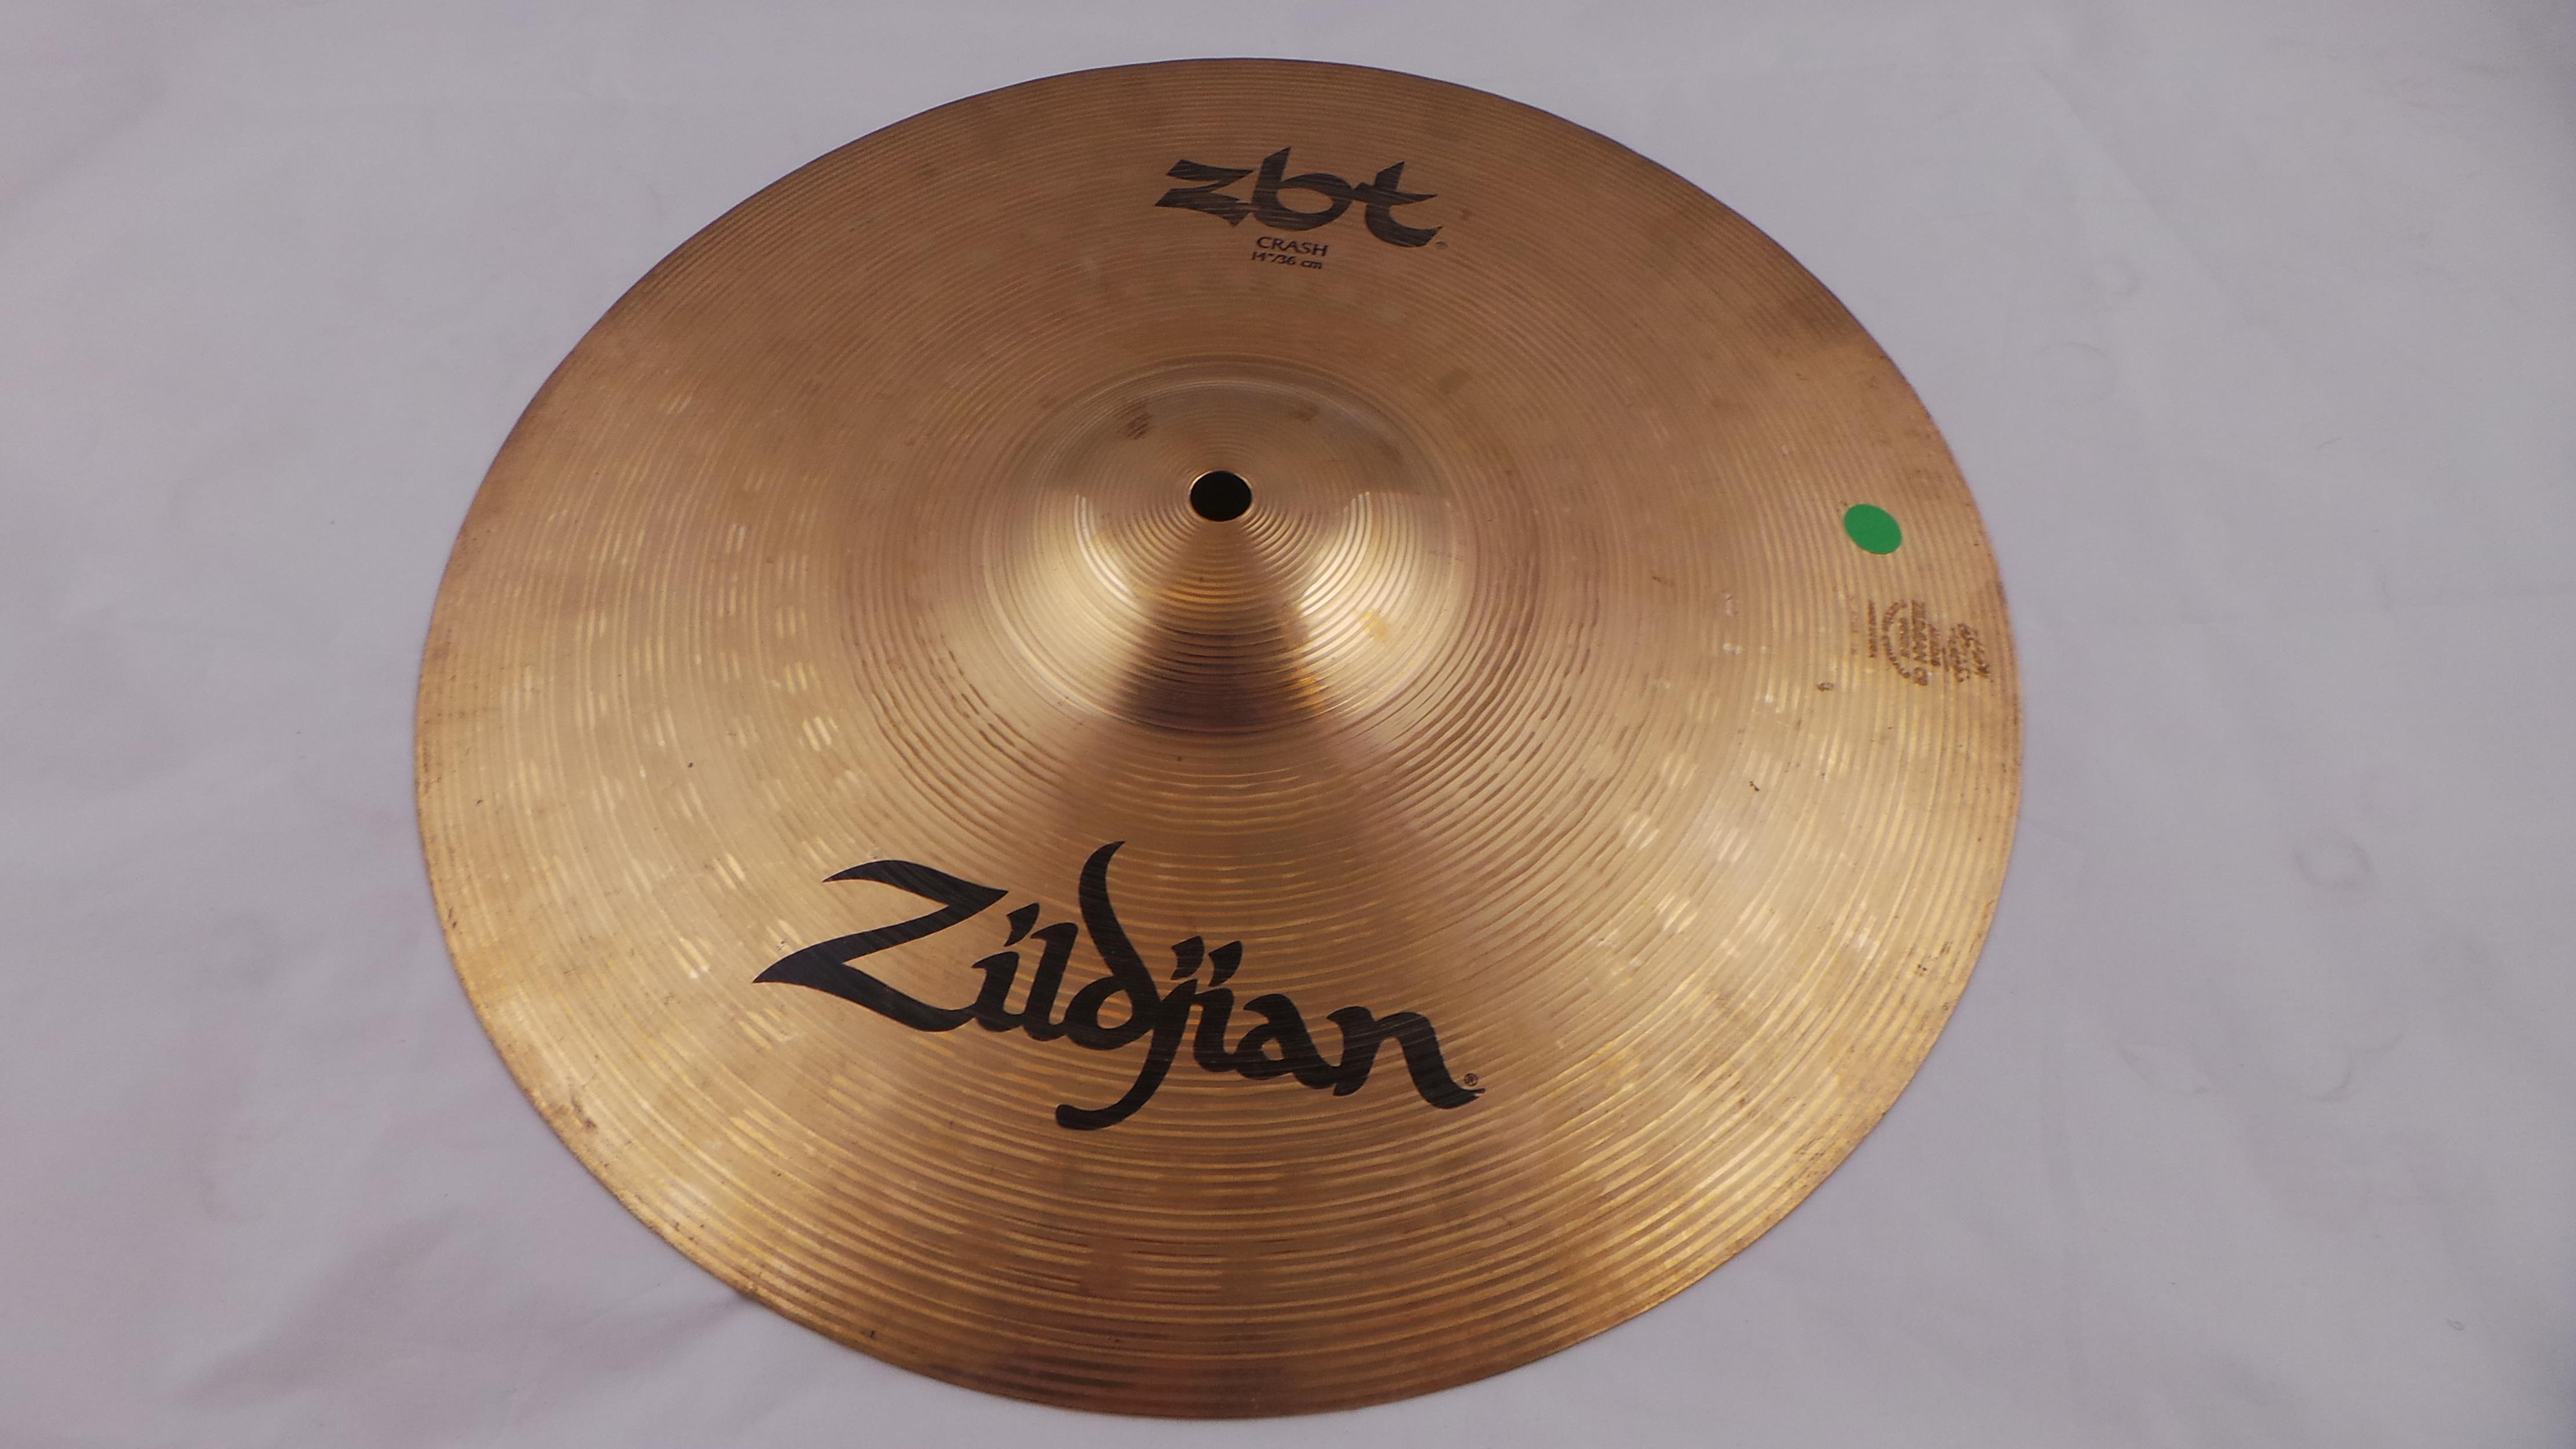 ZILDJIAN ZBT CRASH 14 . - Batterie / Percussioni Piatti - Crash